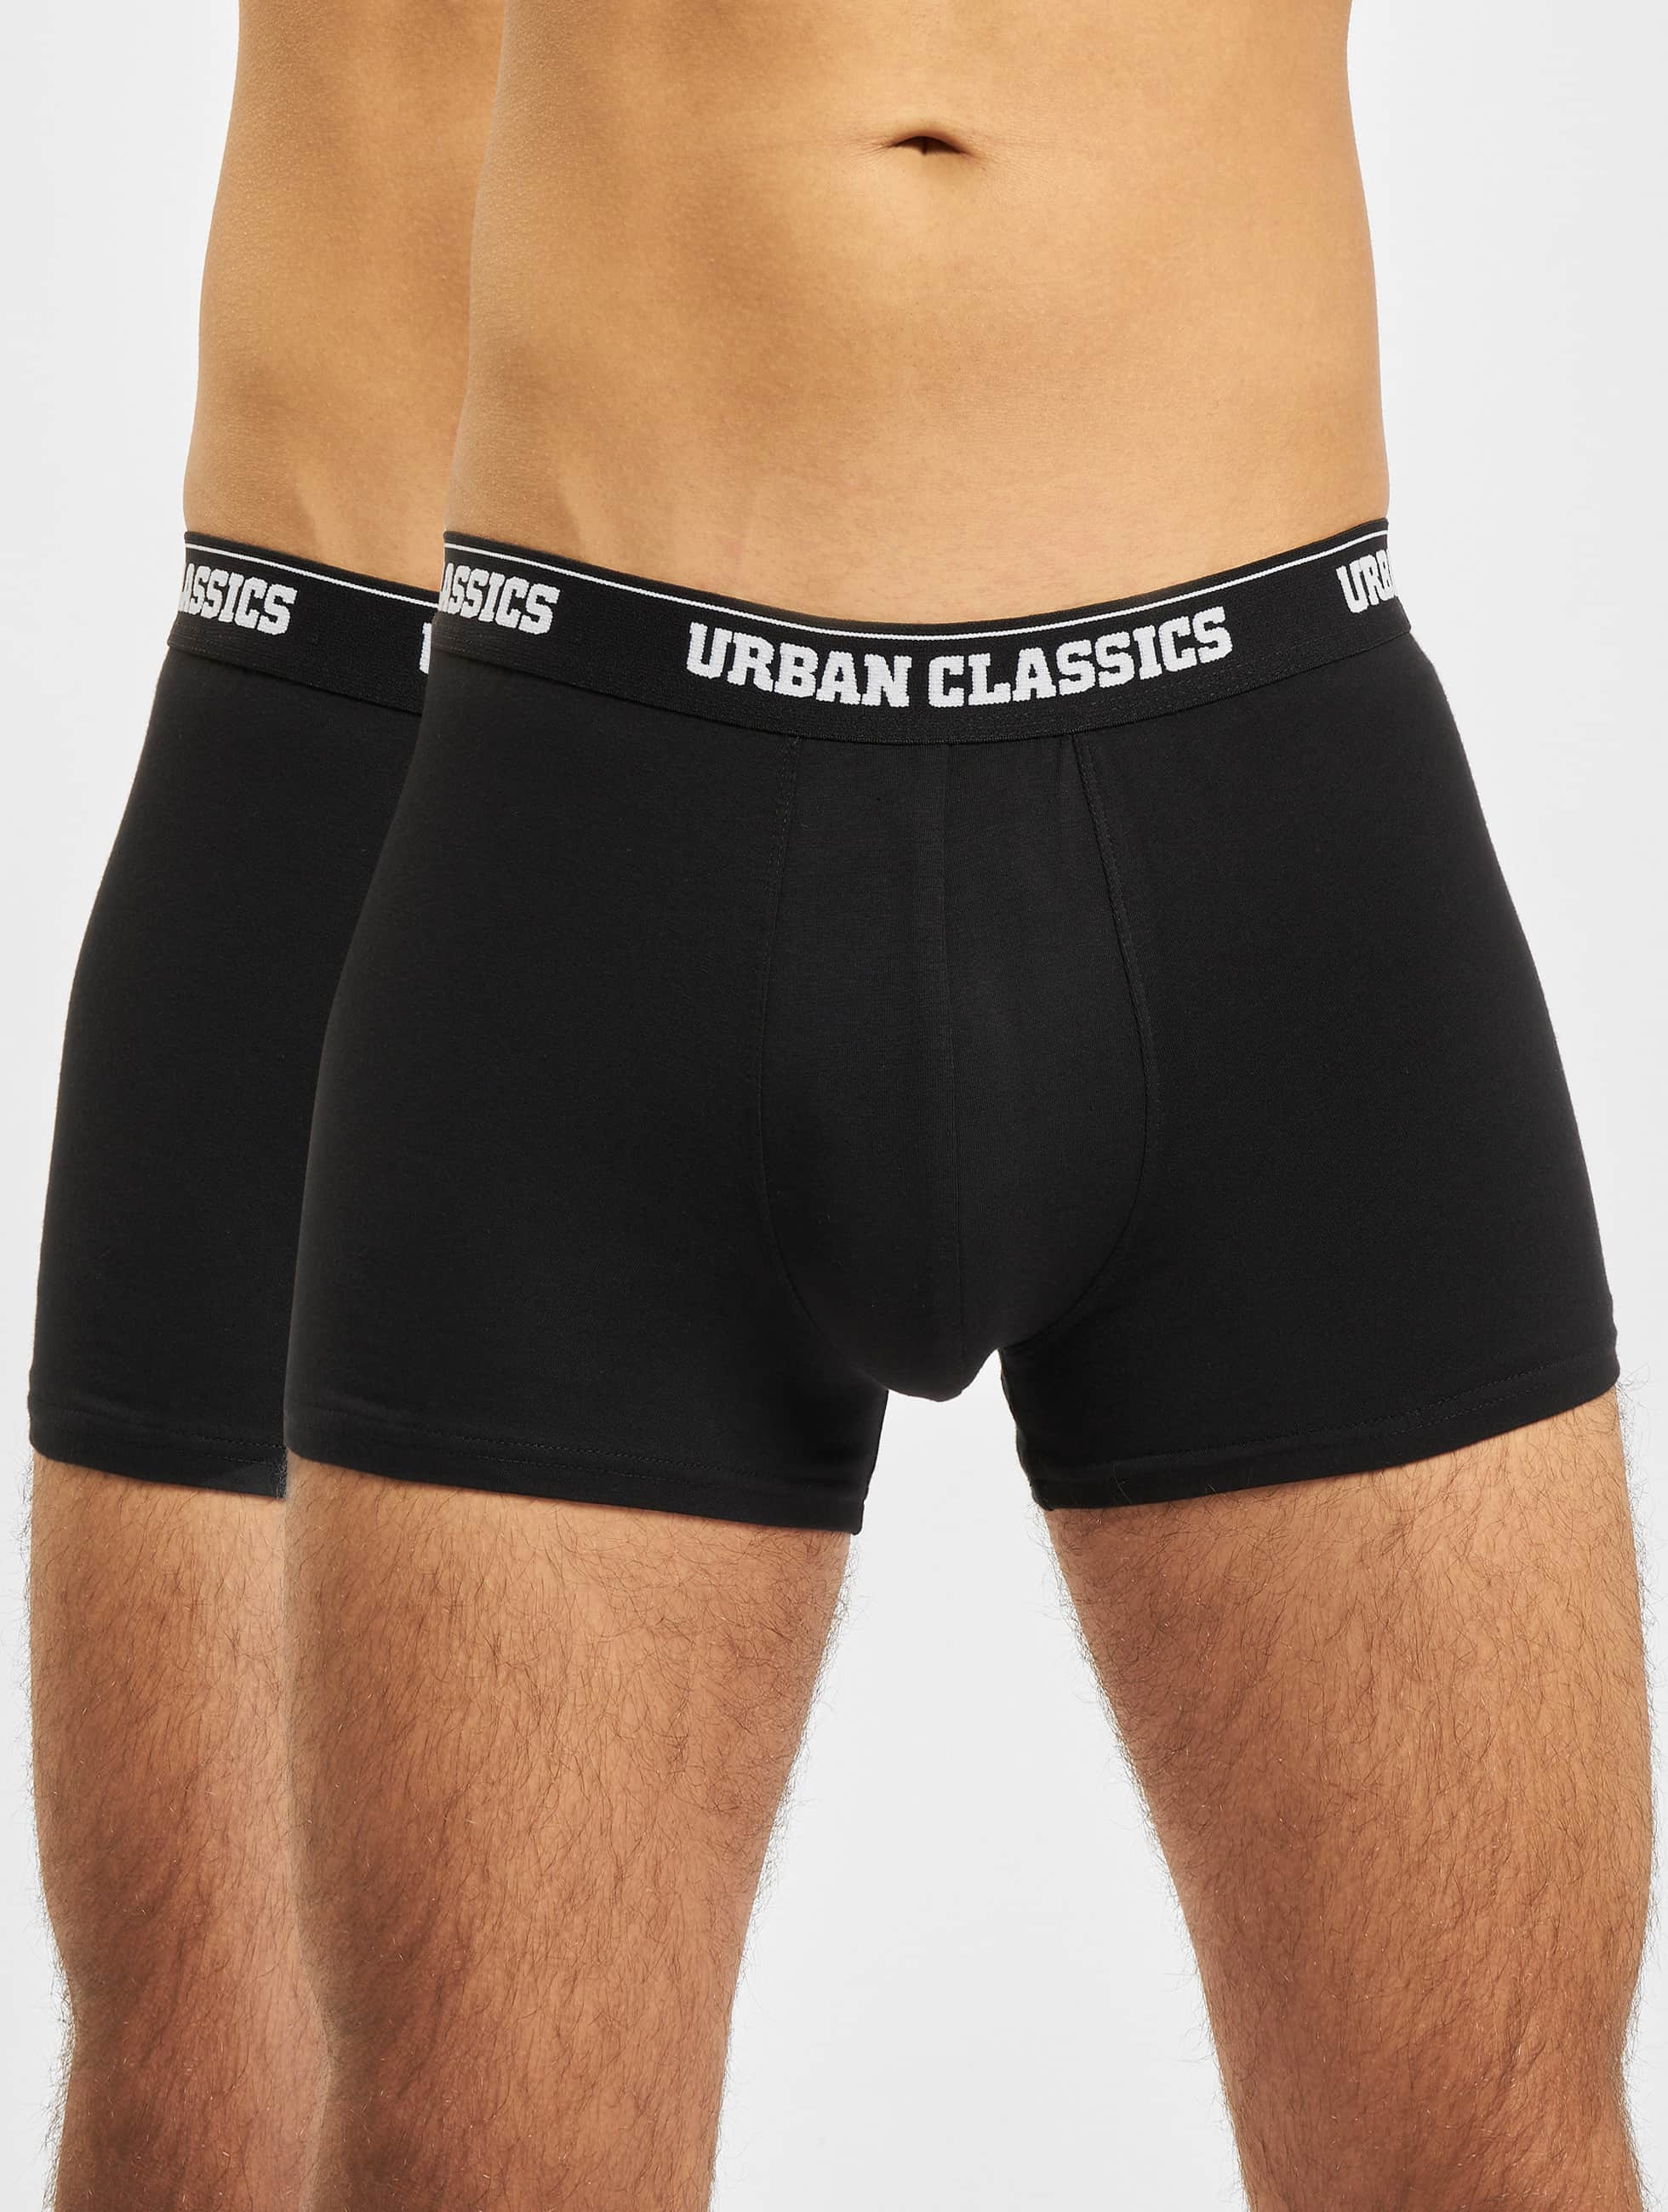 Urban Classics Boxer Short Mens Double Pack black